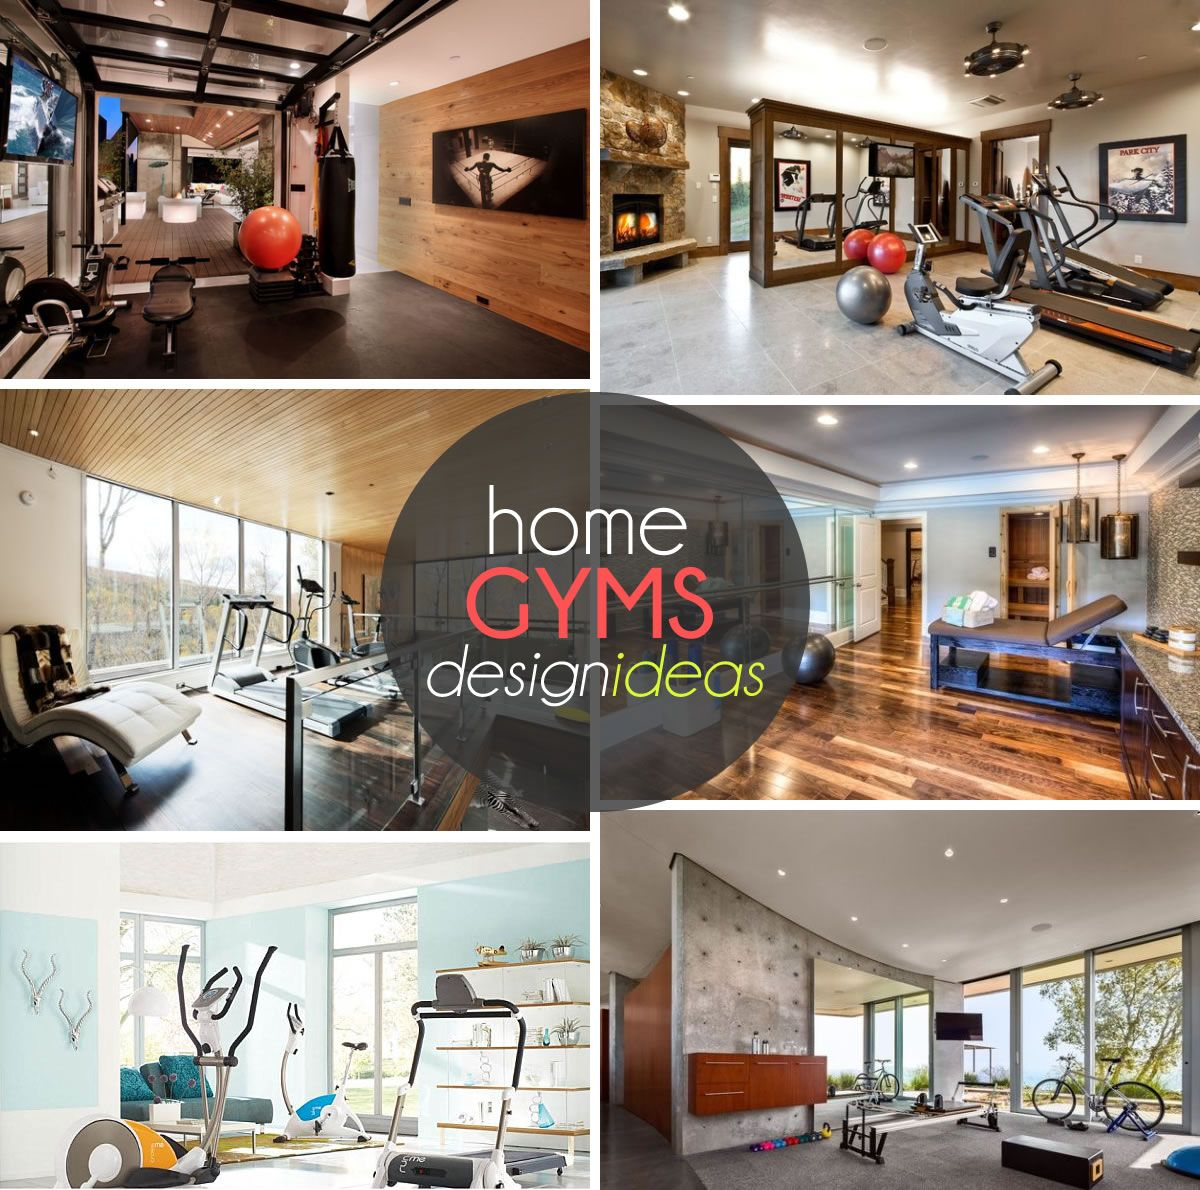 Interior Design Plans: Gym Interior, Fitness Design And